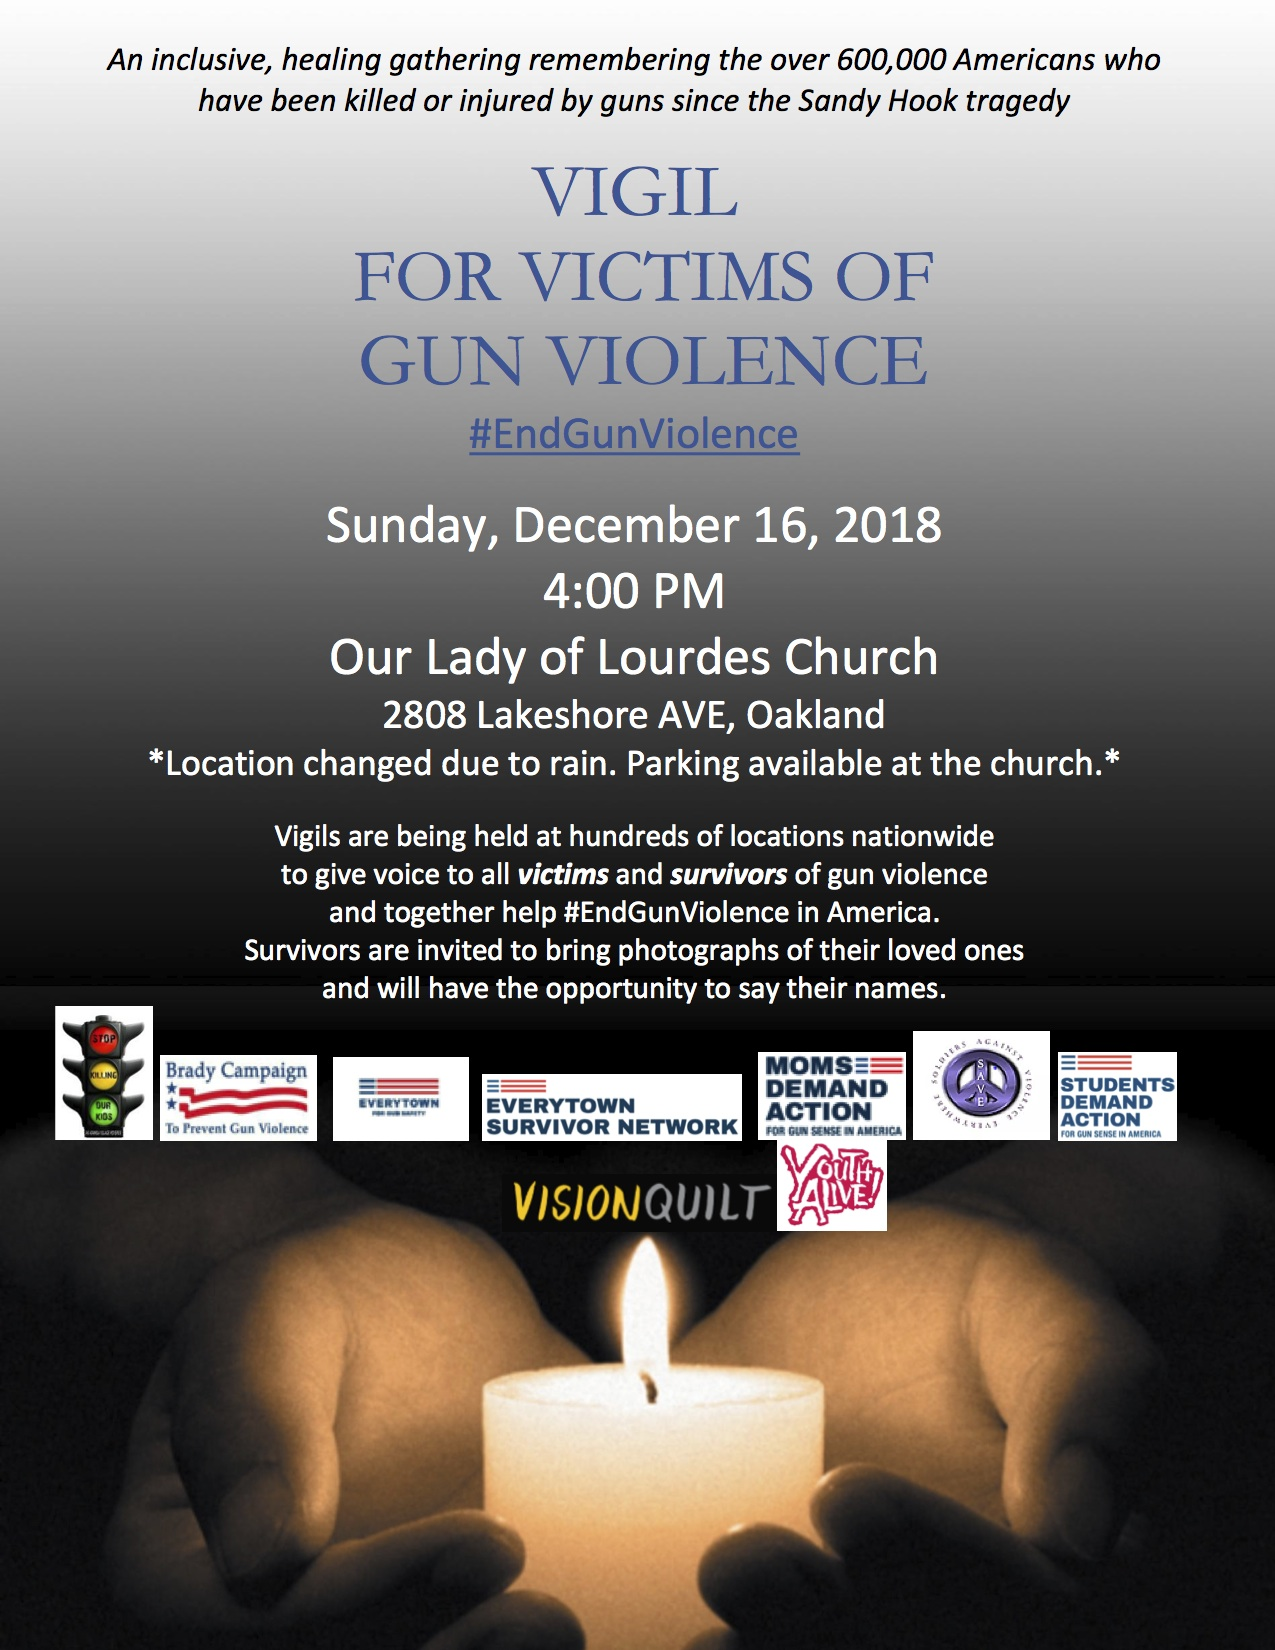 Submit Your Posters/Photos/Articles of Your Vigils/Events - We hope to compile a list of all the vigils/events in the nation.